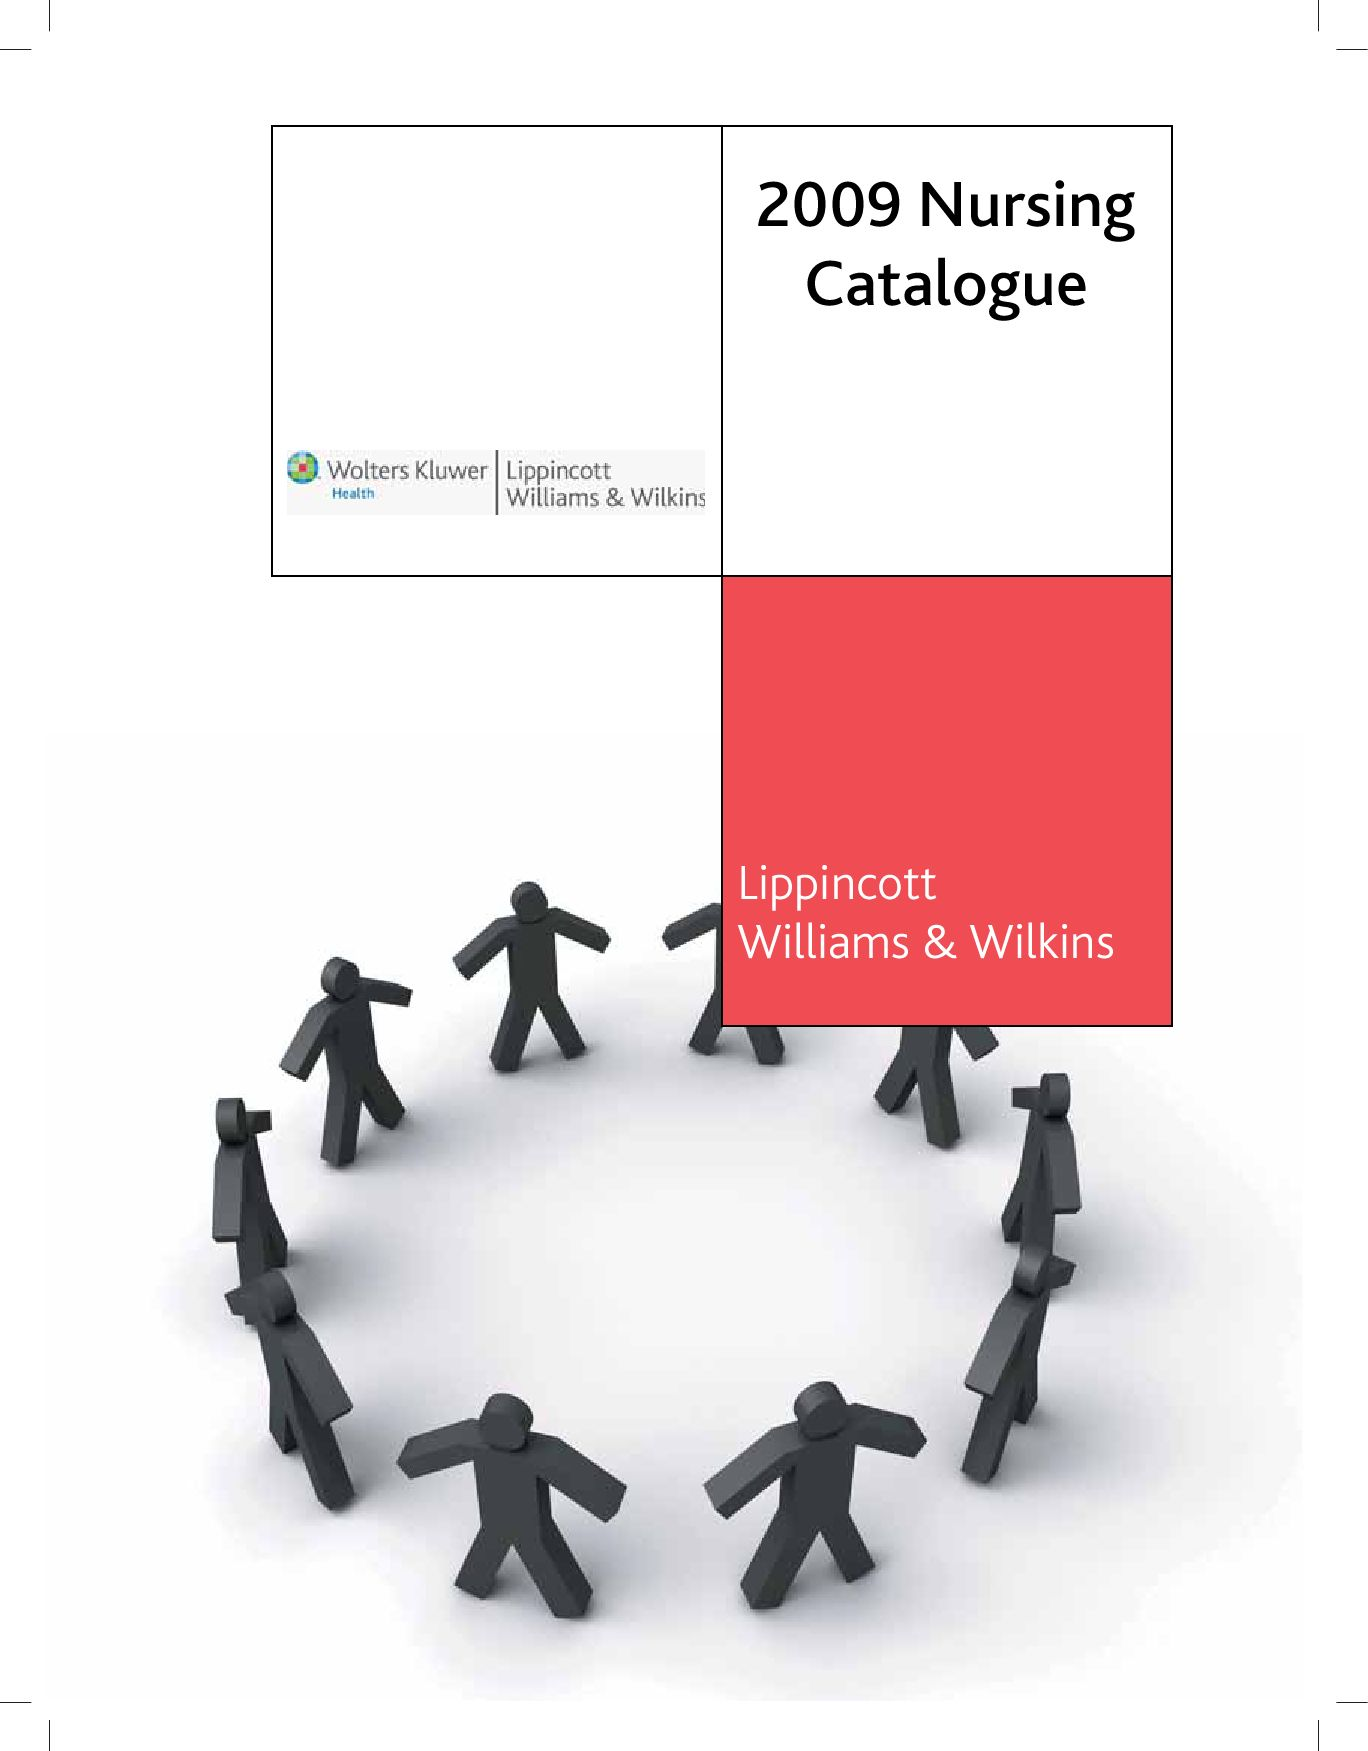 Lww 2009 nursing catalogue by lippincott williams and wilkins issuu fandeluxe Choice Image